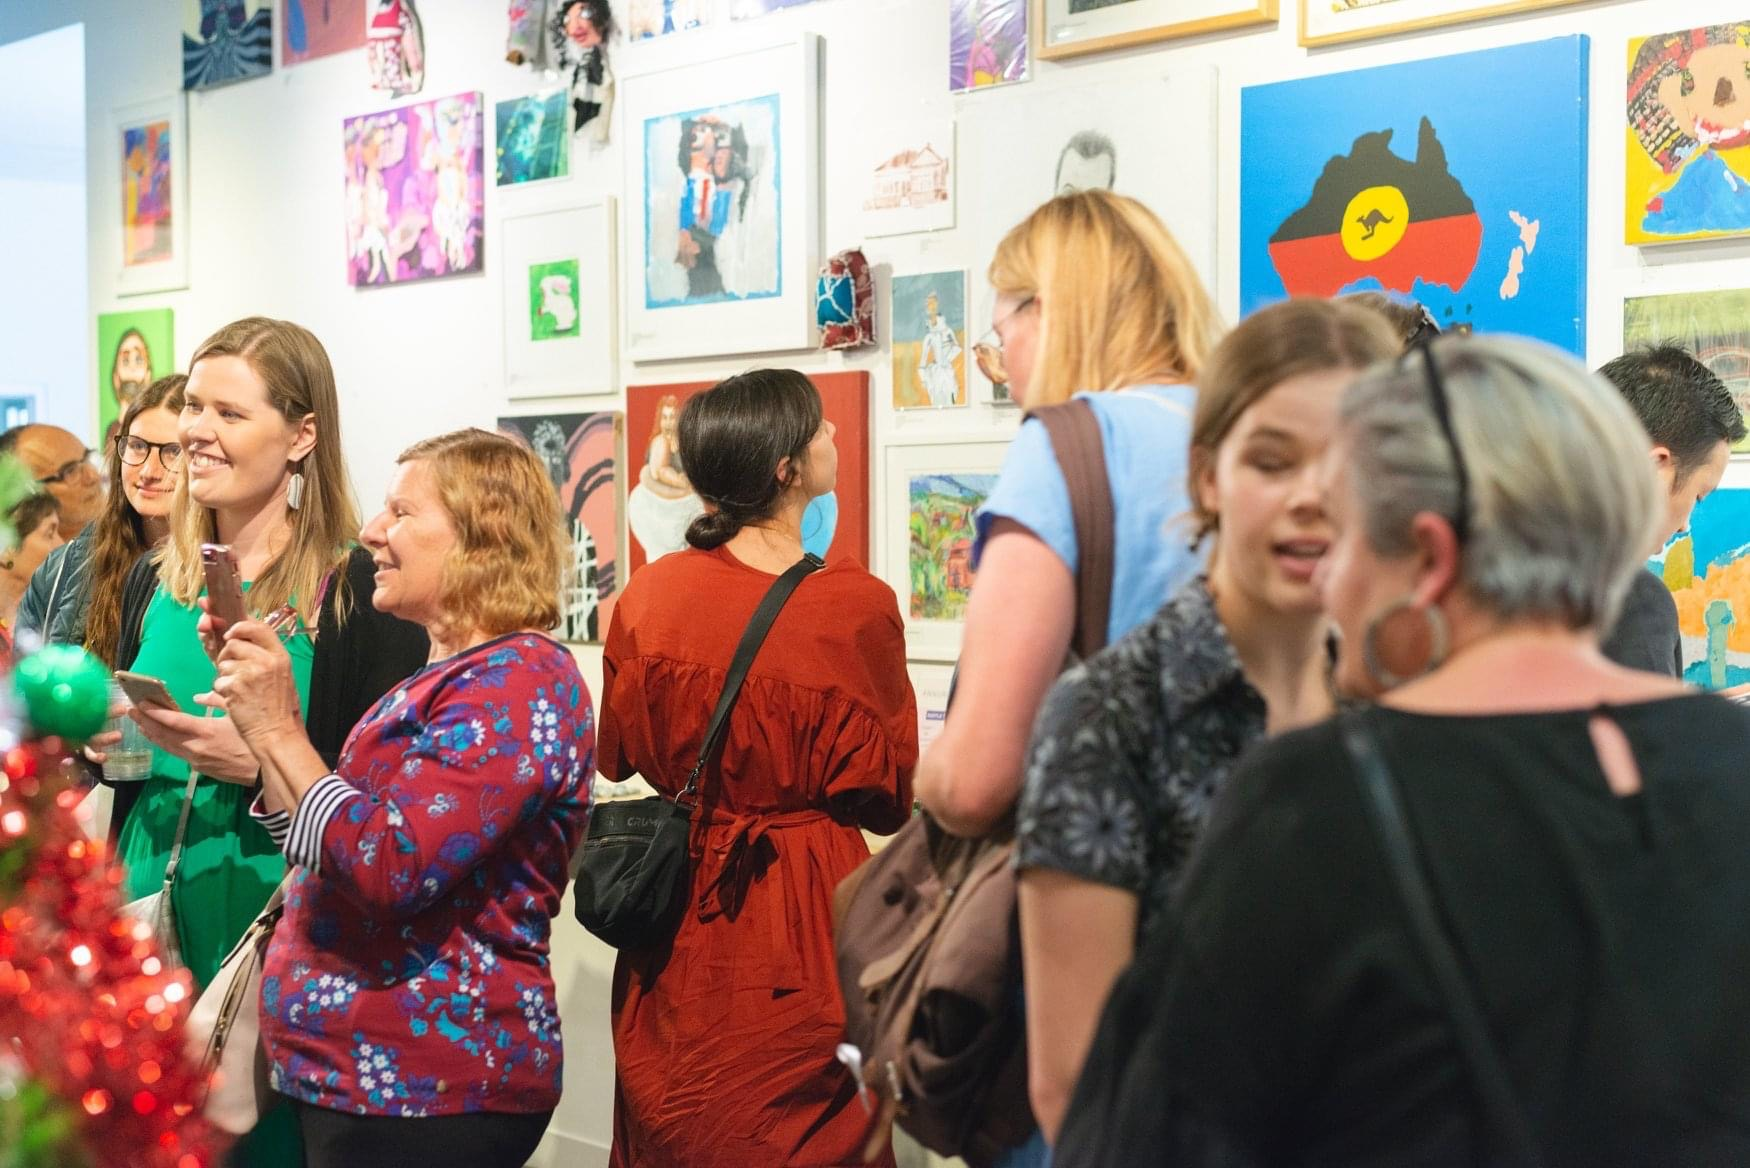 Crowd of people looking at art at a gallery